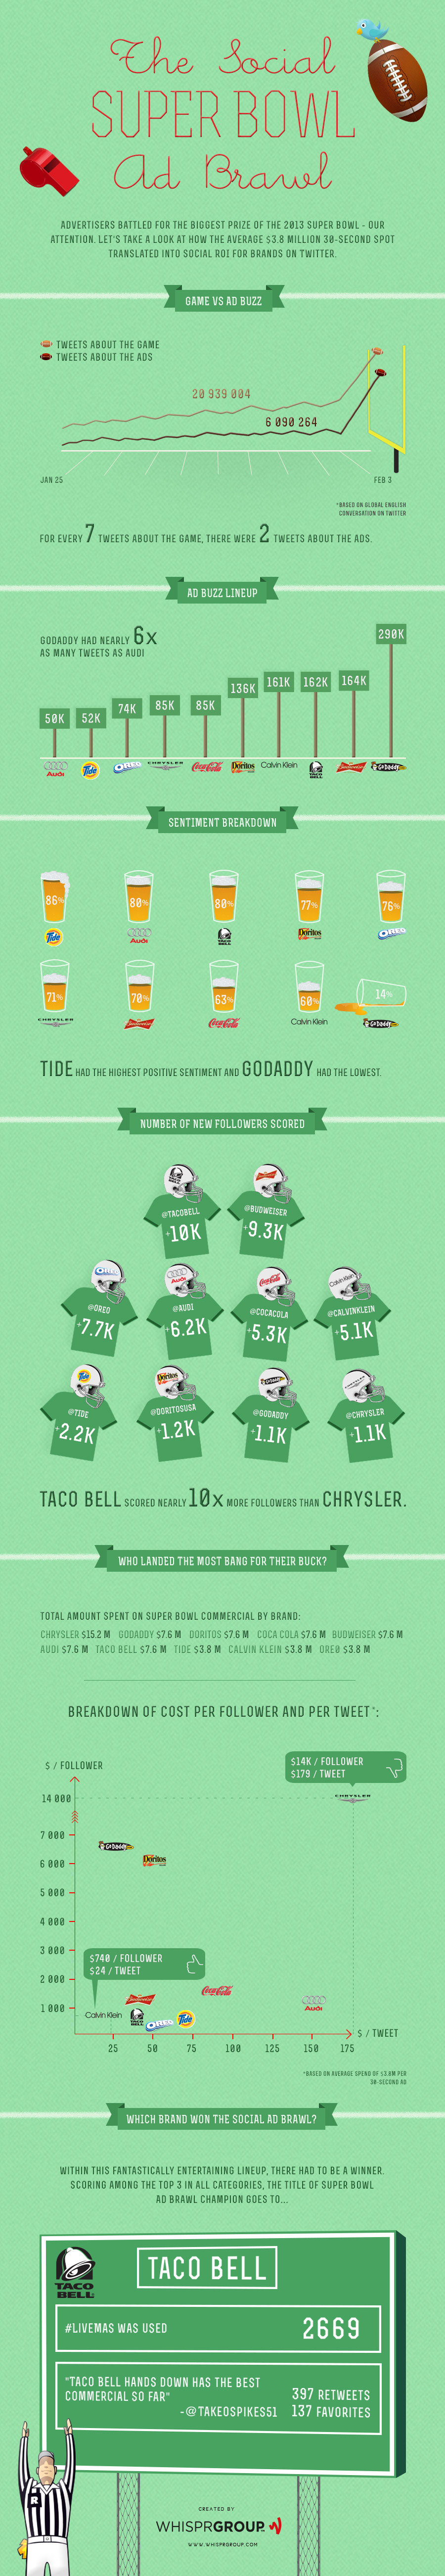 Infographic-Superbowl-1